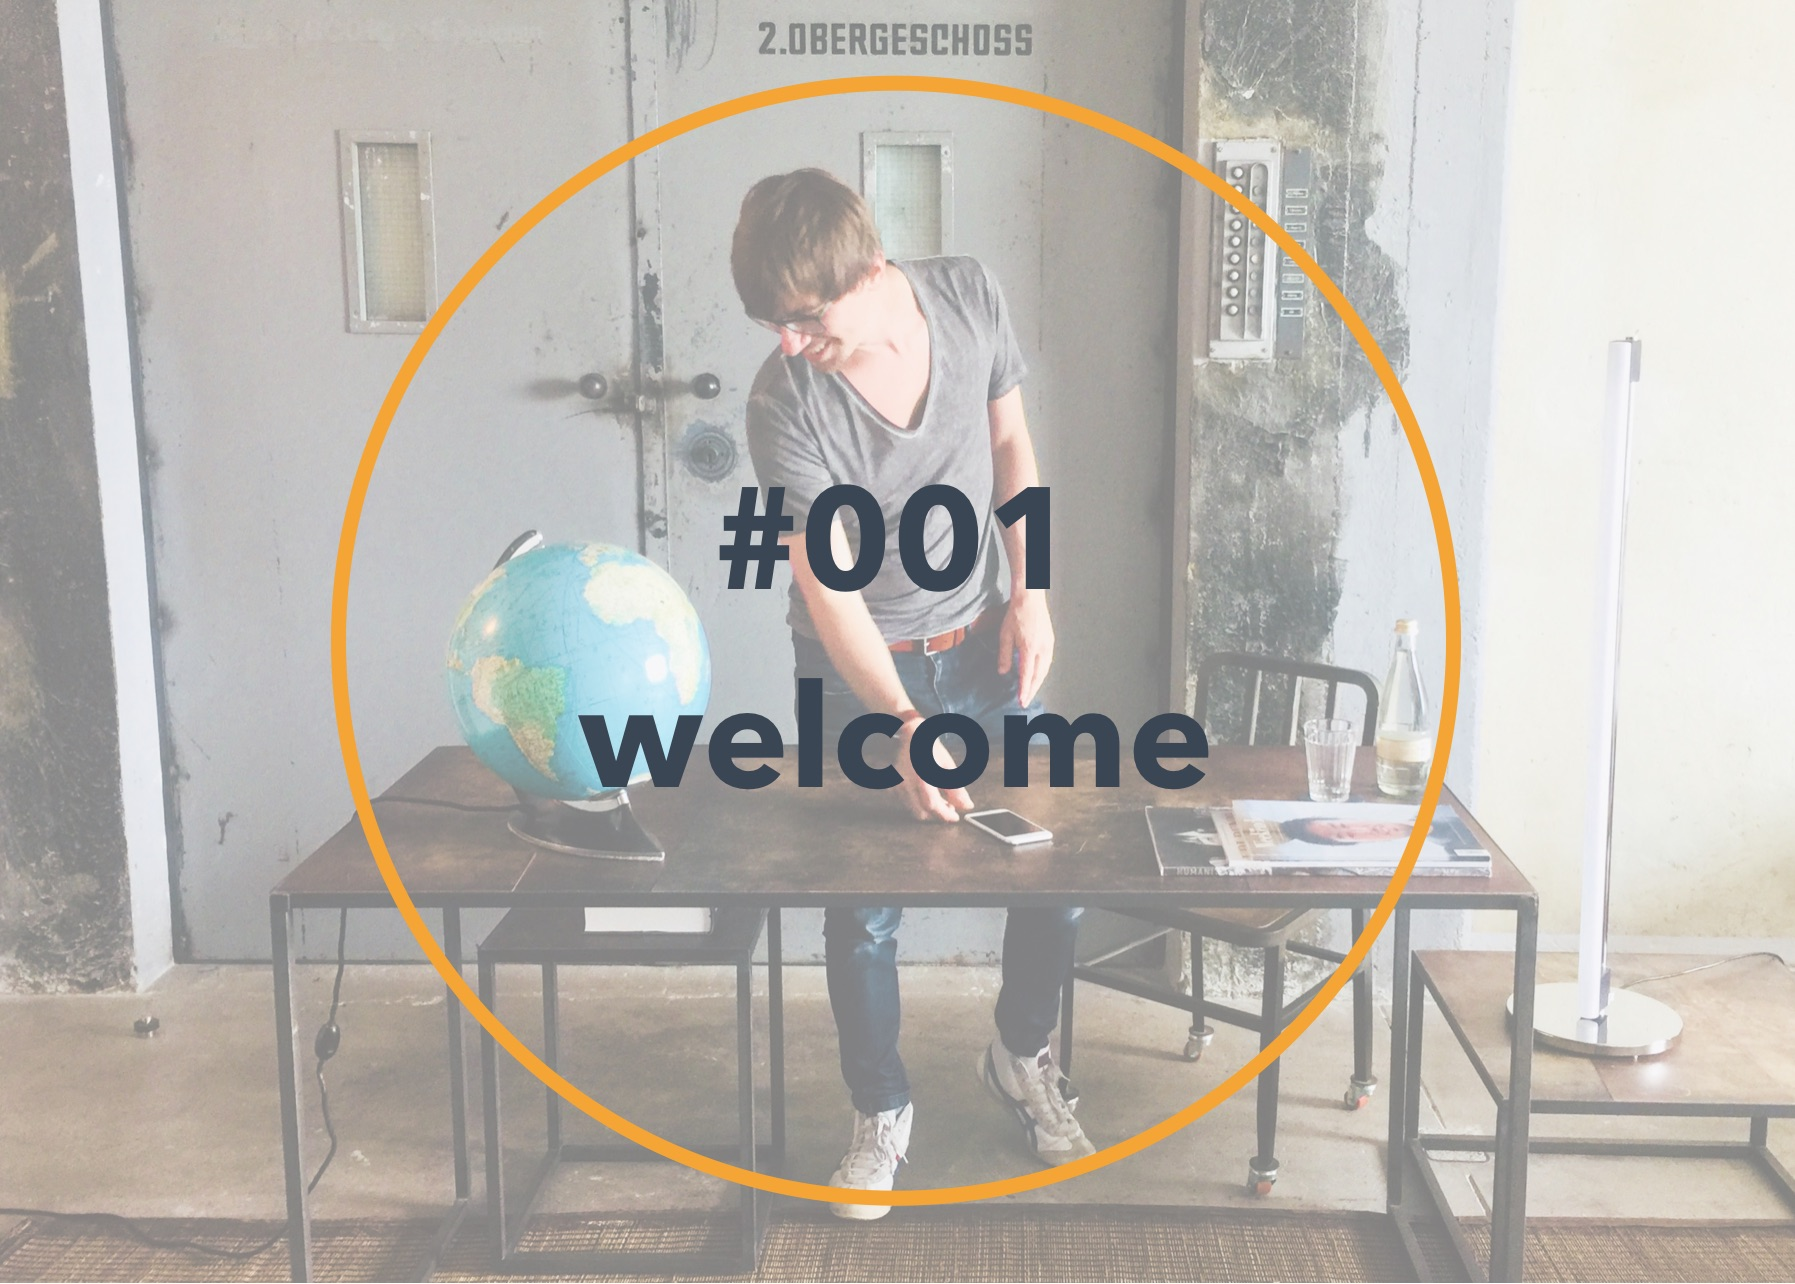 001 welcome